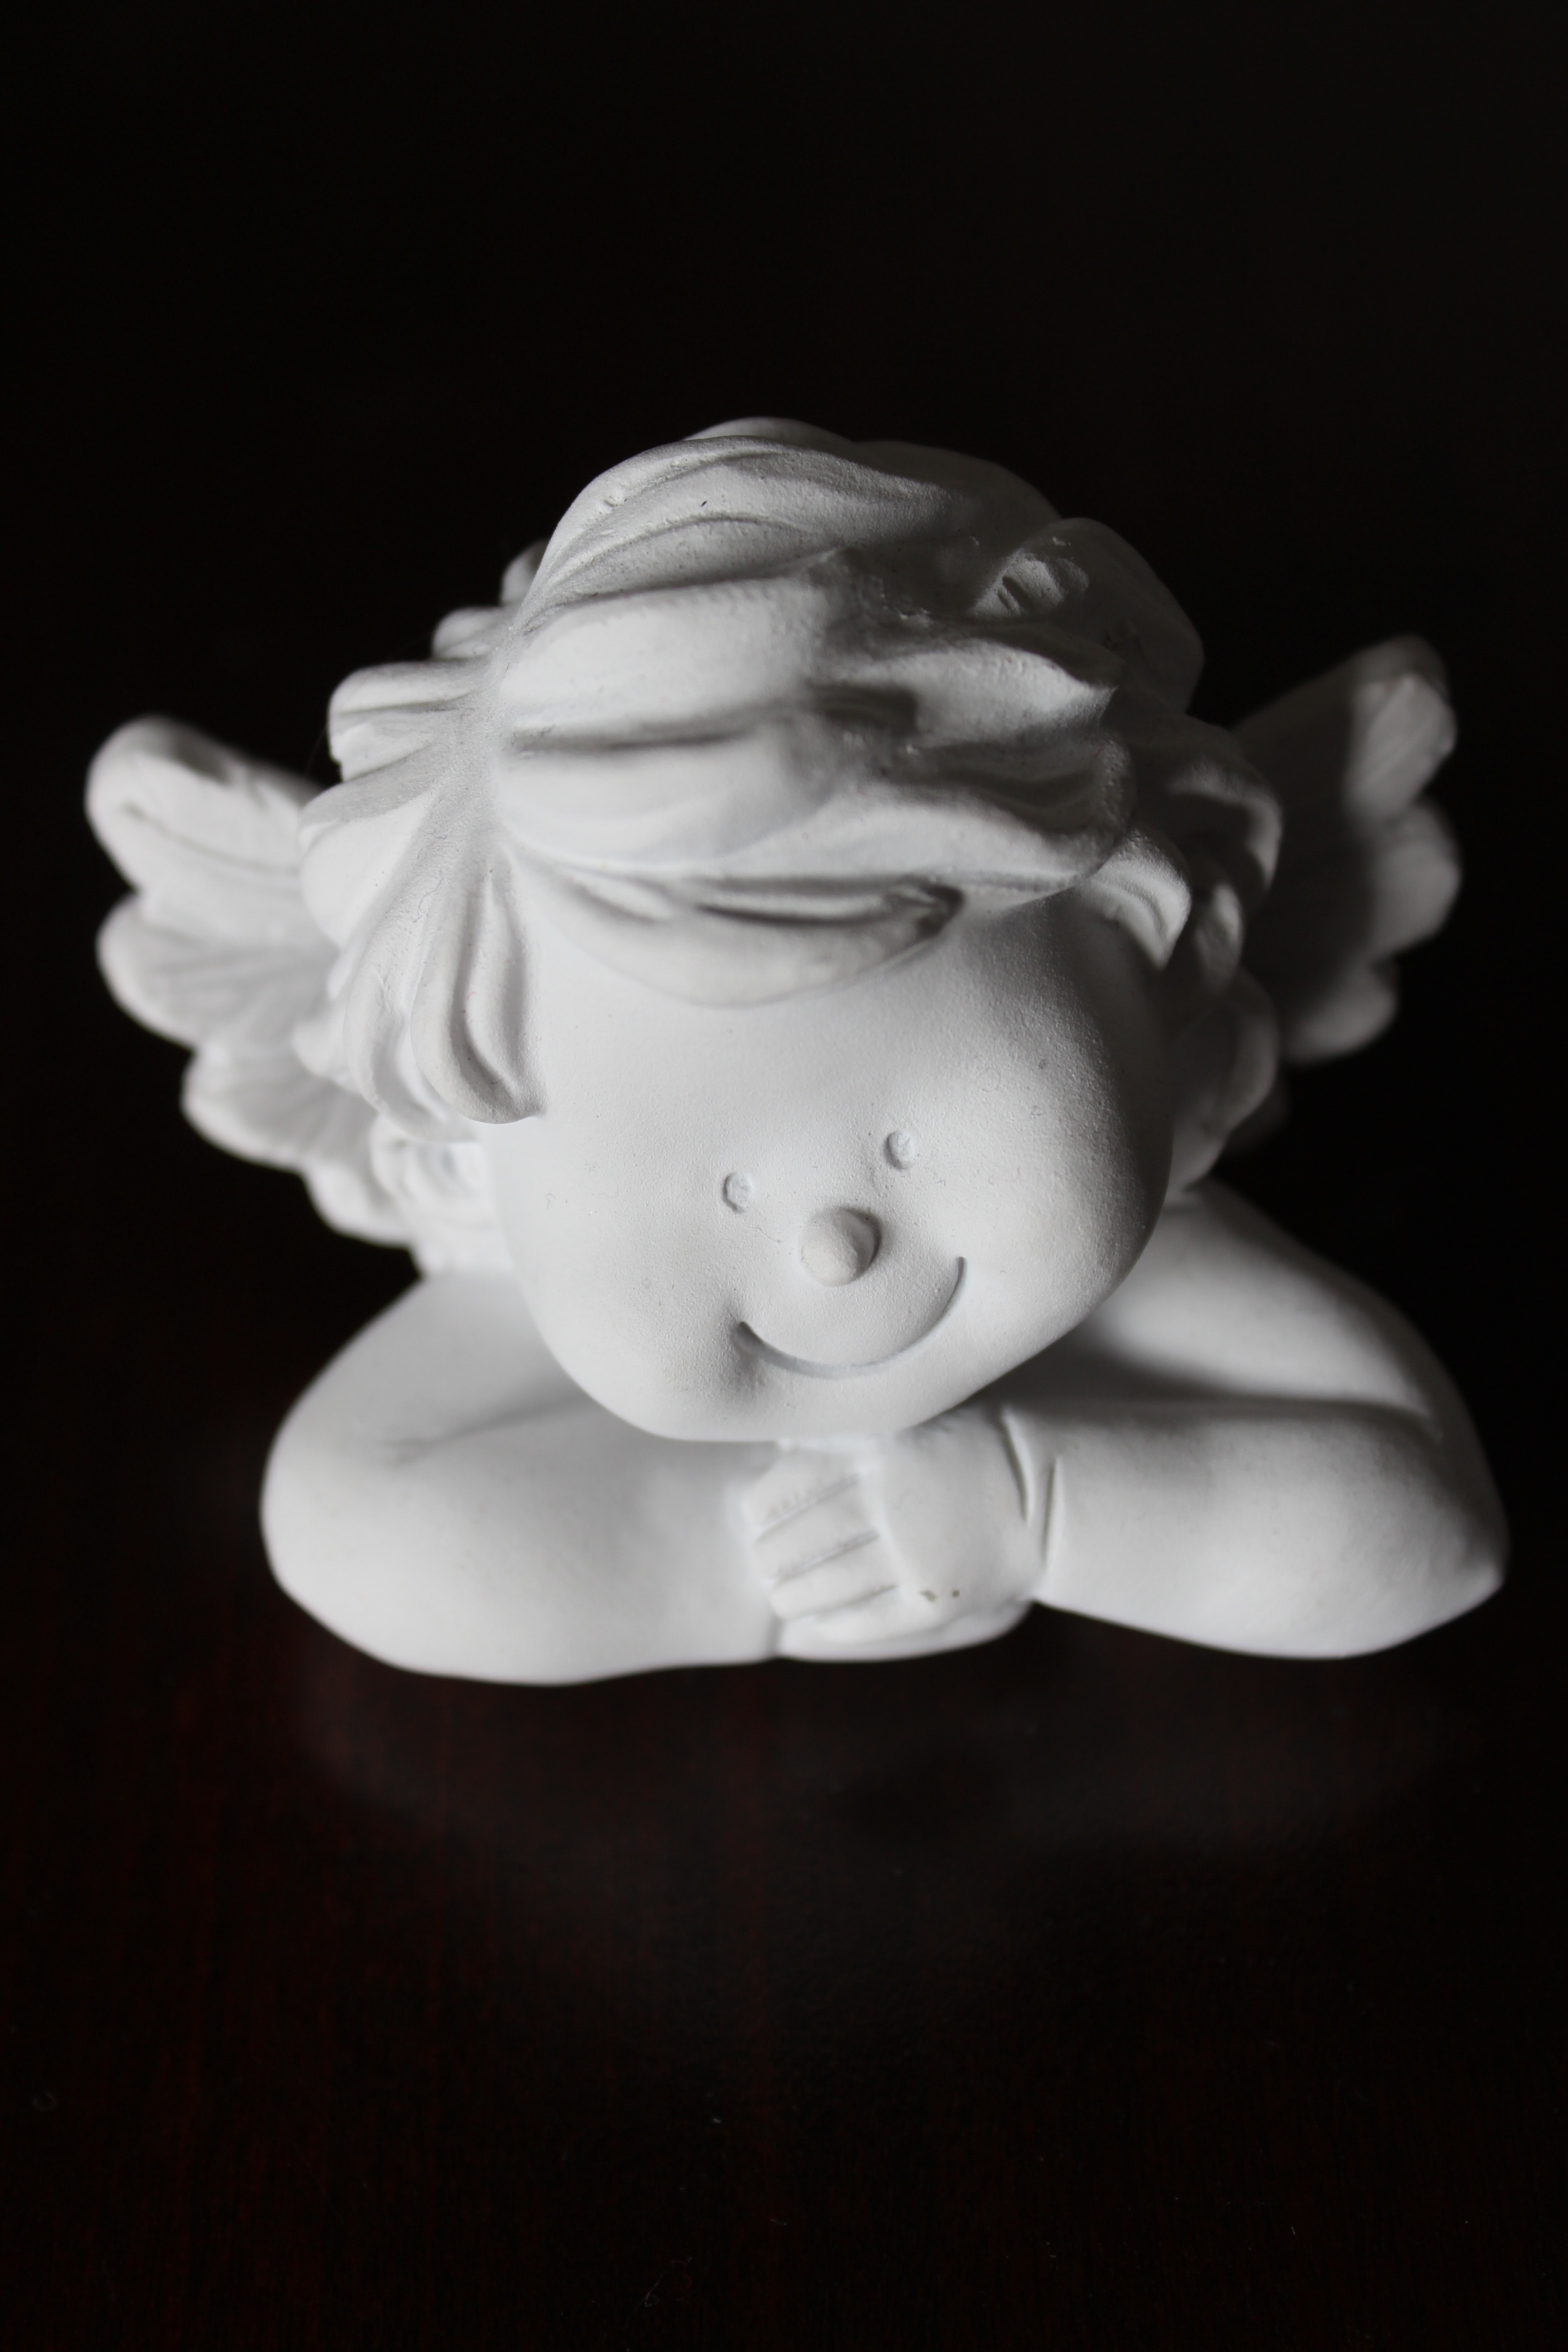 White Angel Figurine, Angel, Object, Wing, Vintage, HQ Photo